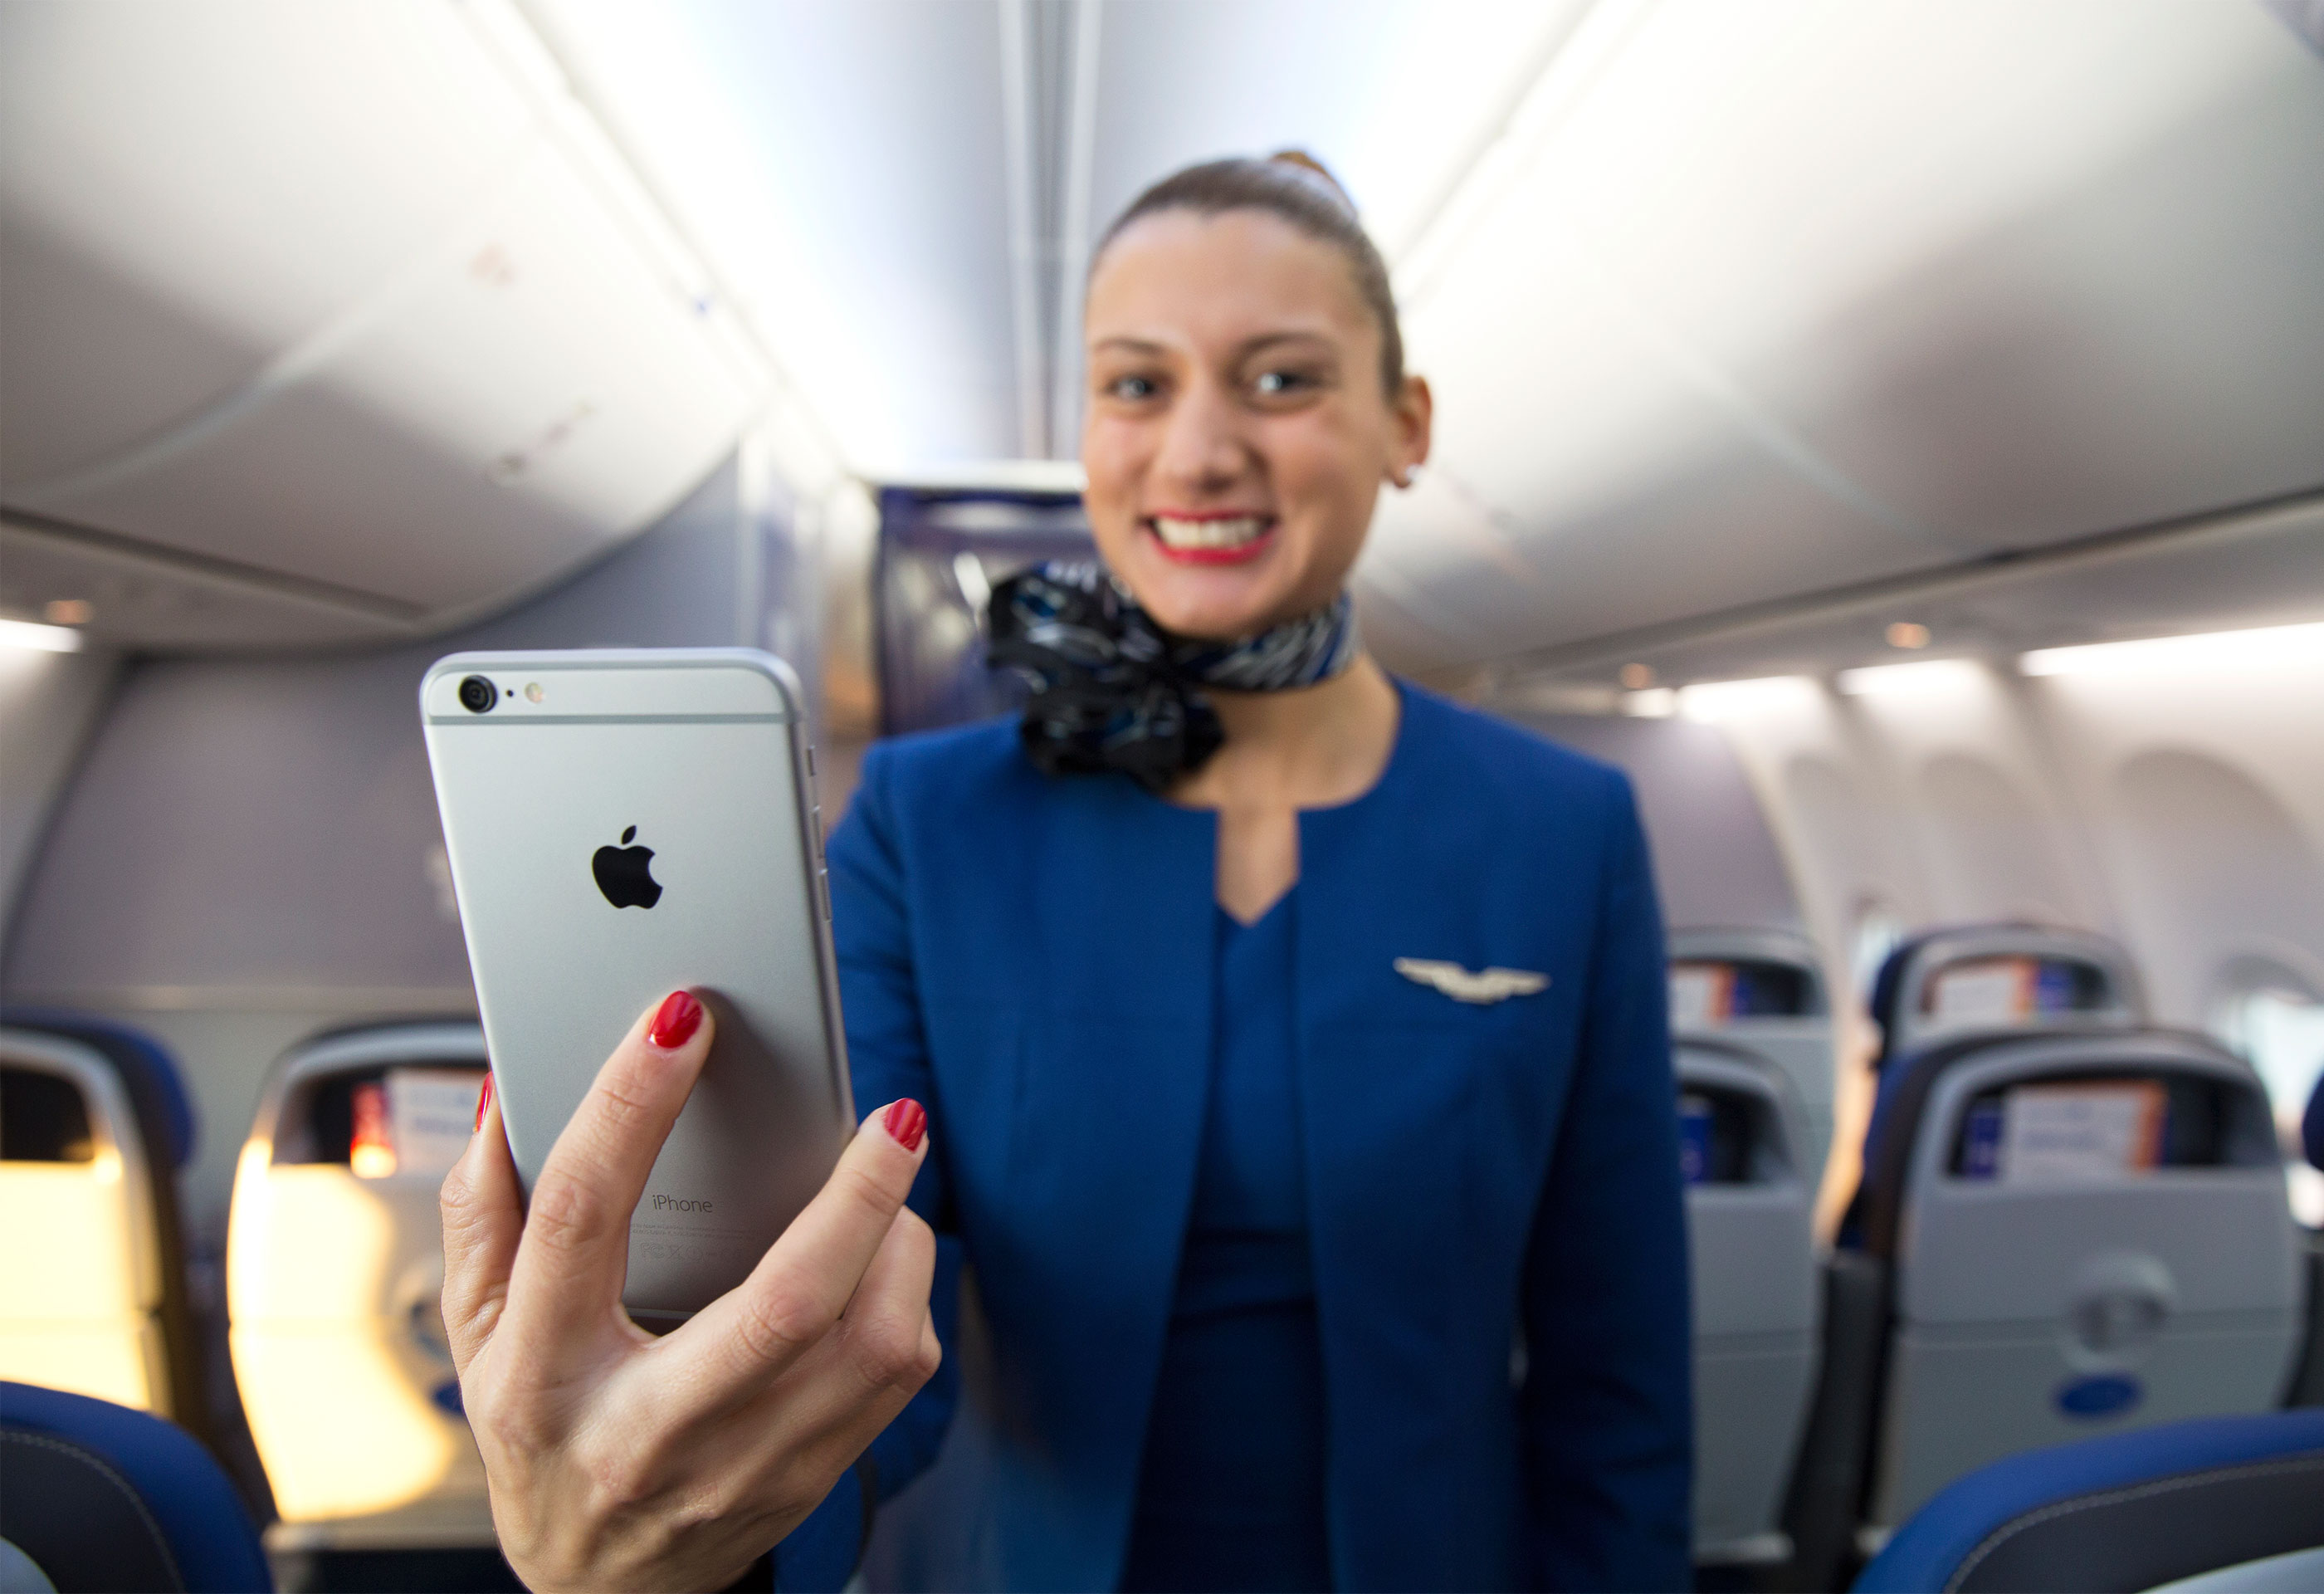 United Airlines flight attendants to get iPhone 6 Plus to better provide flyer-friendly service